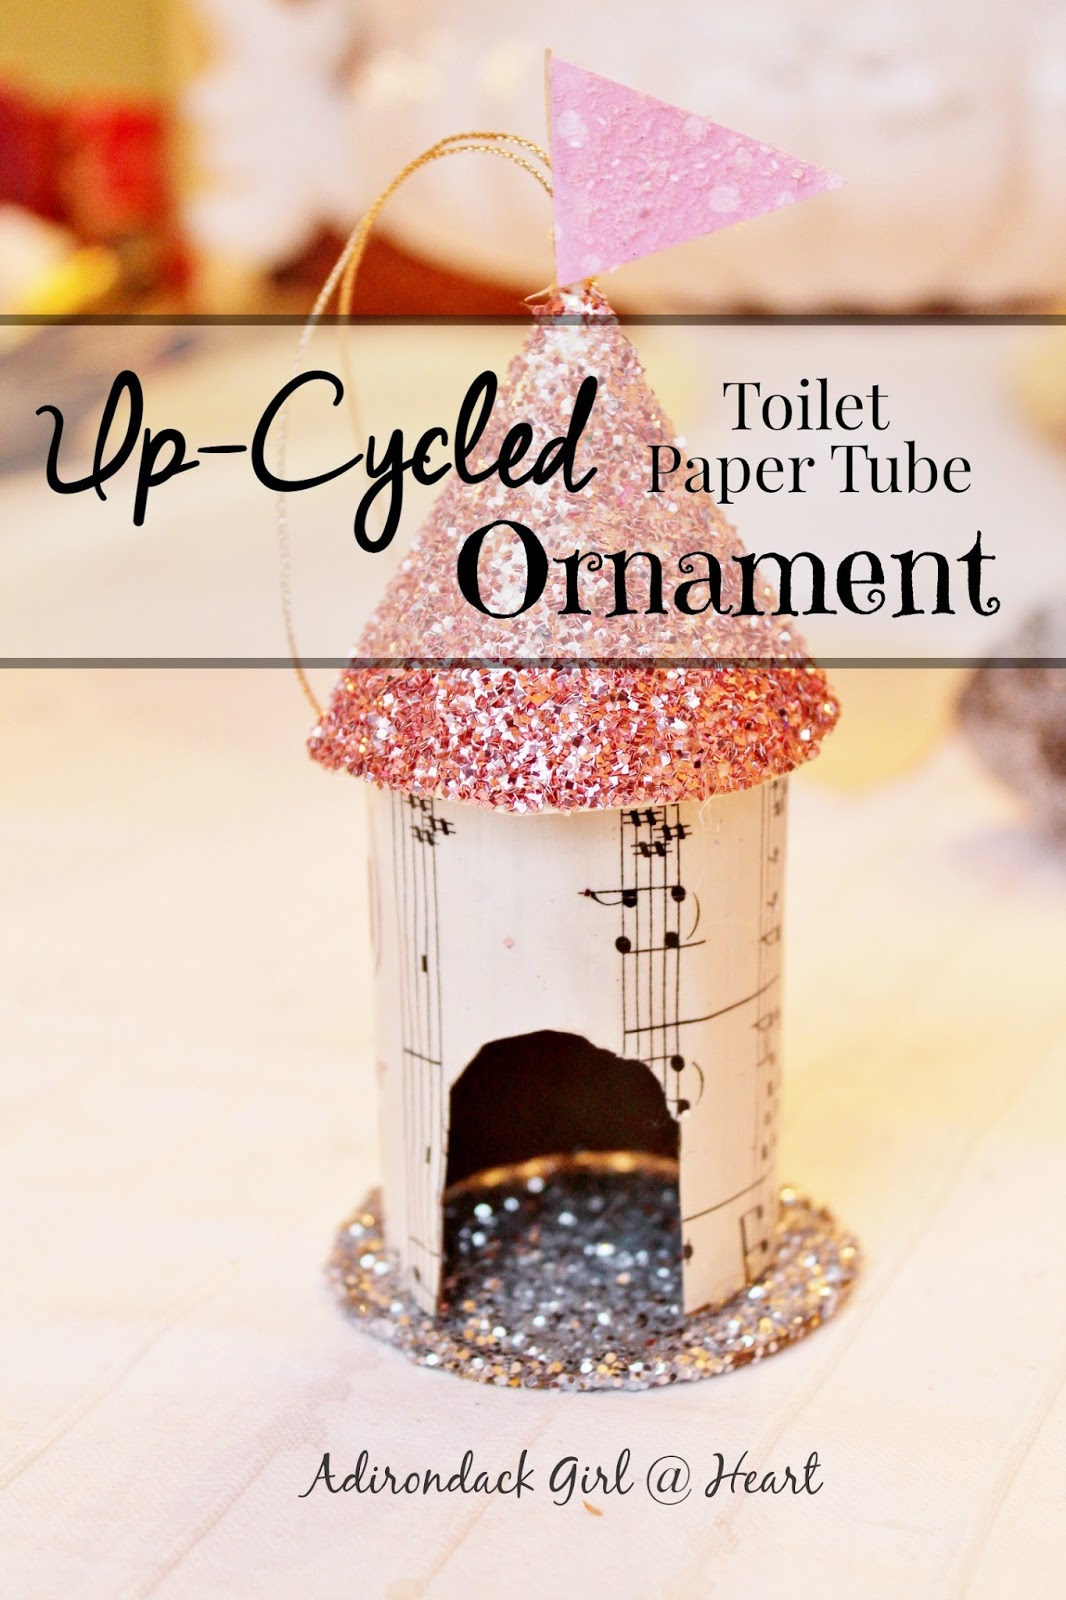 Up-Cycled Toilet Paper Tube Ornament